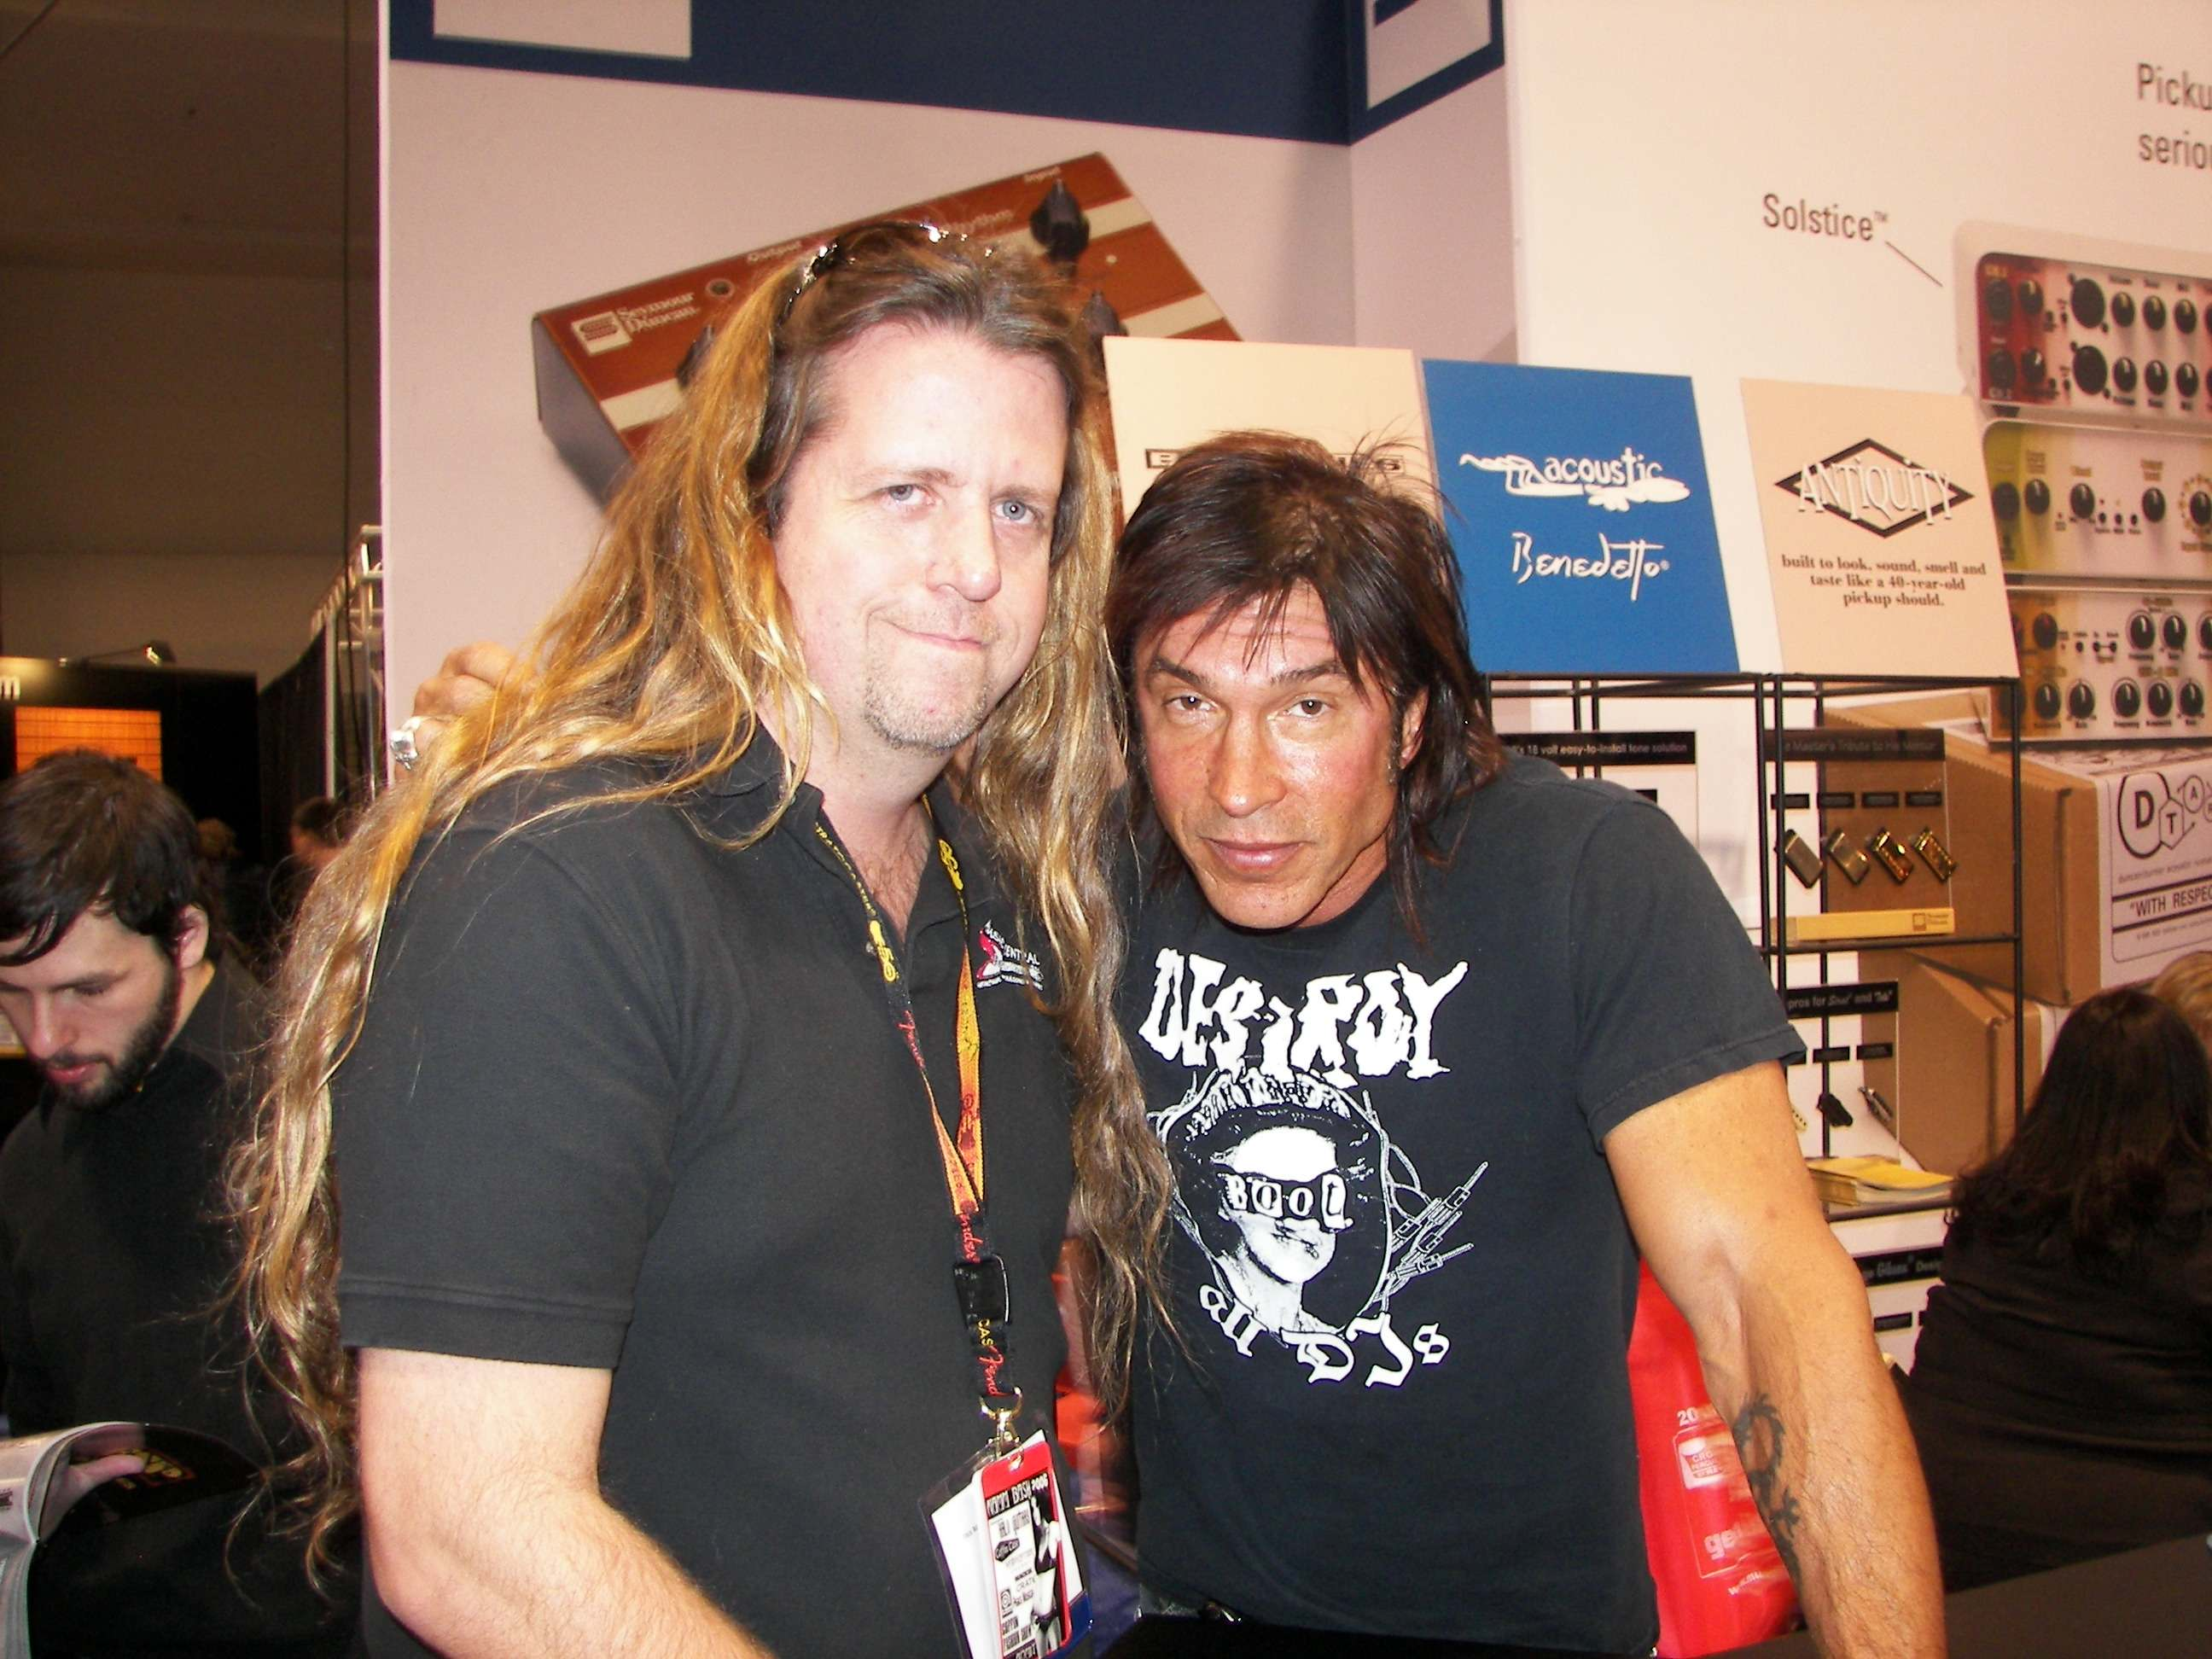 Gerorge Lynch from Lynch Mob, Dokken